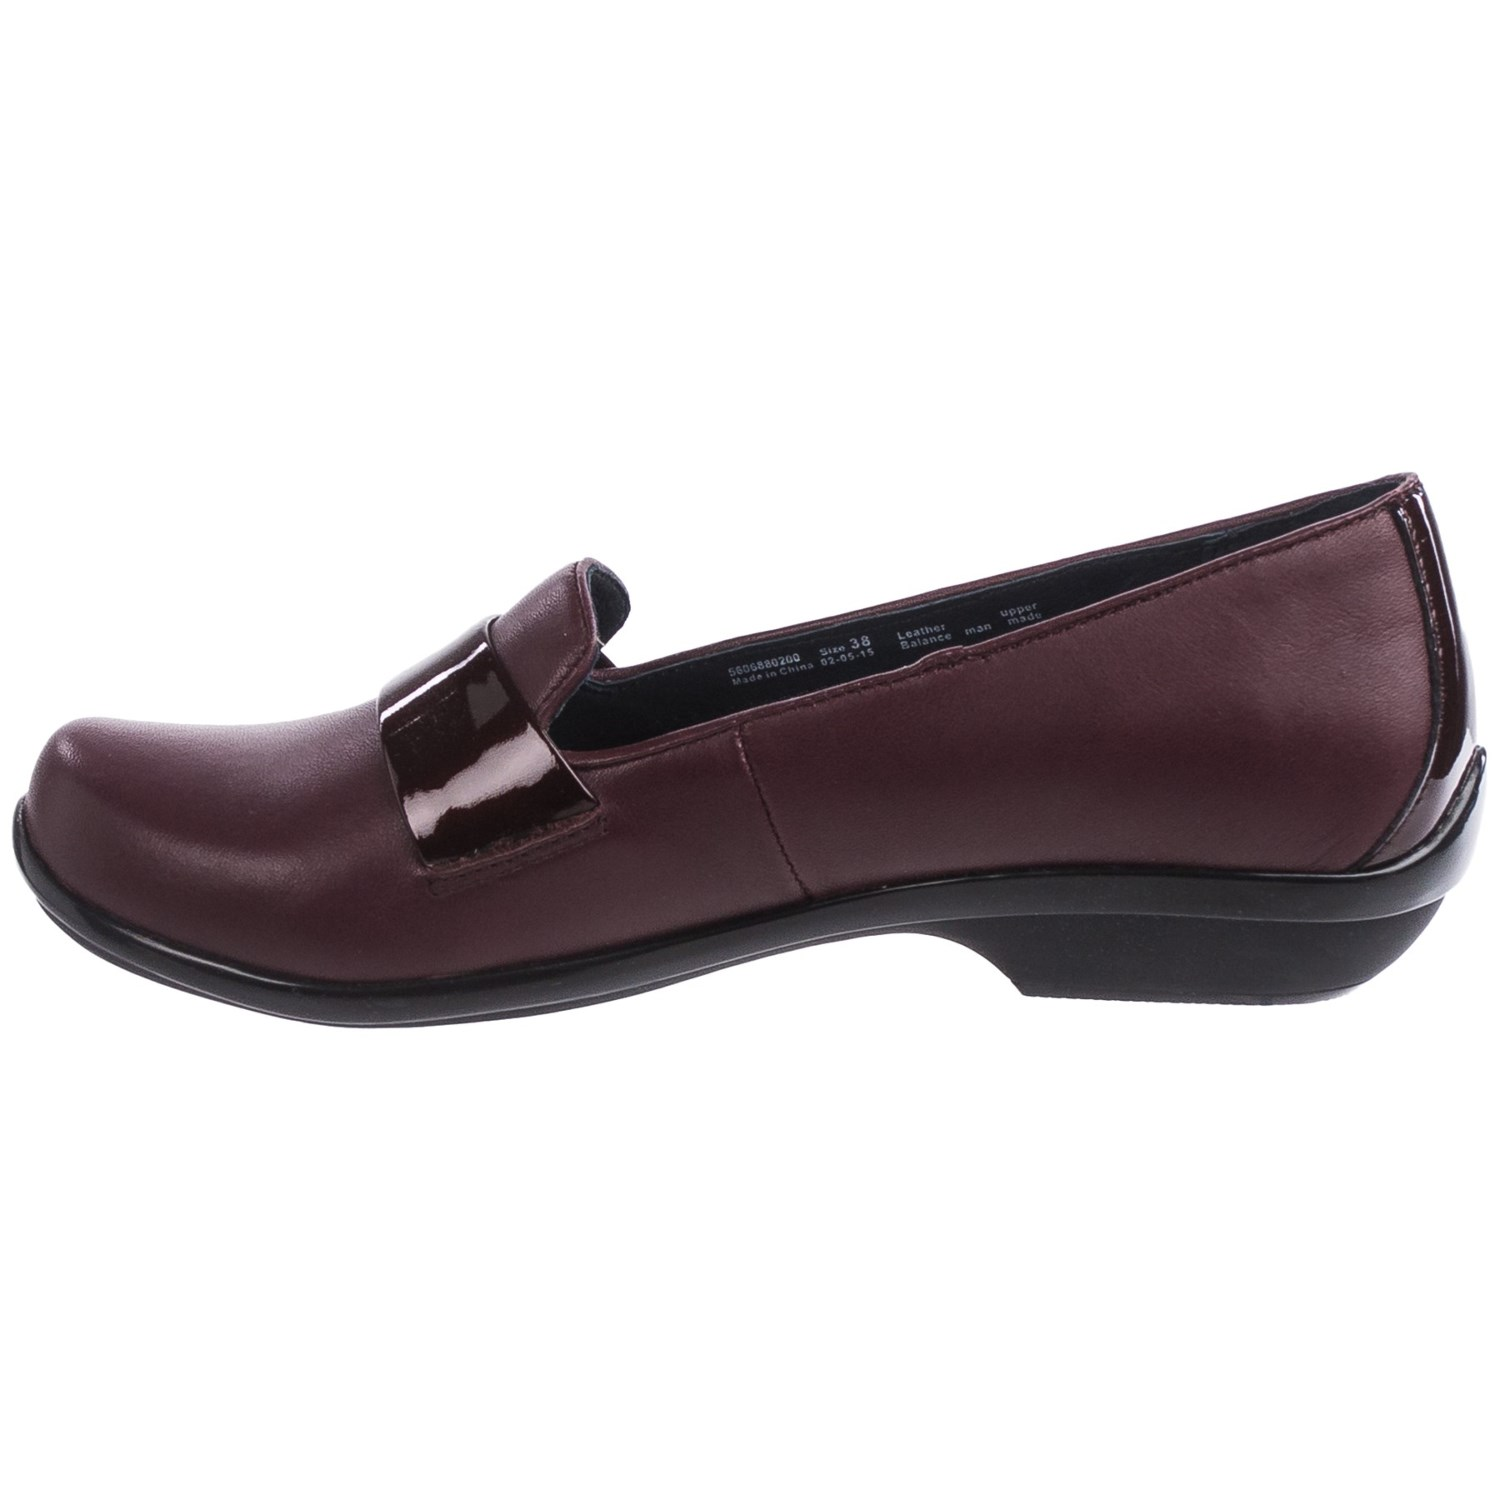 Stores With Dansko Shoes